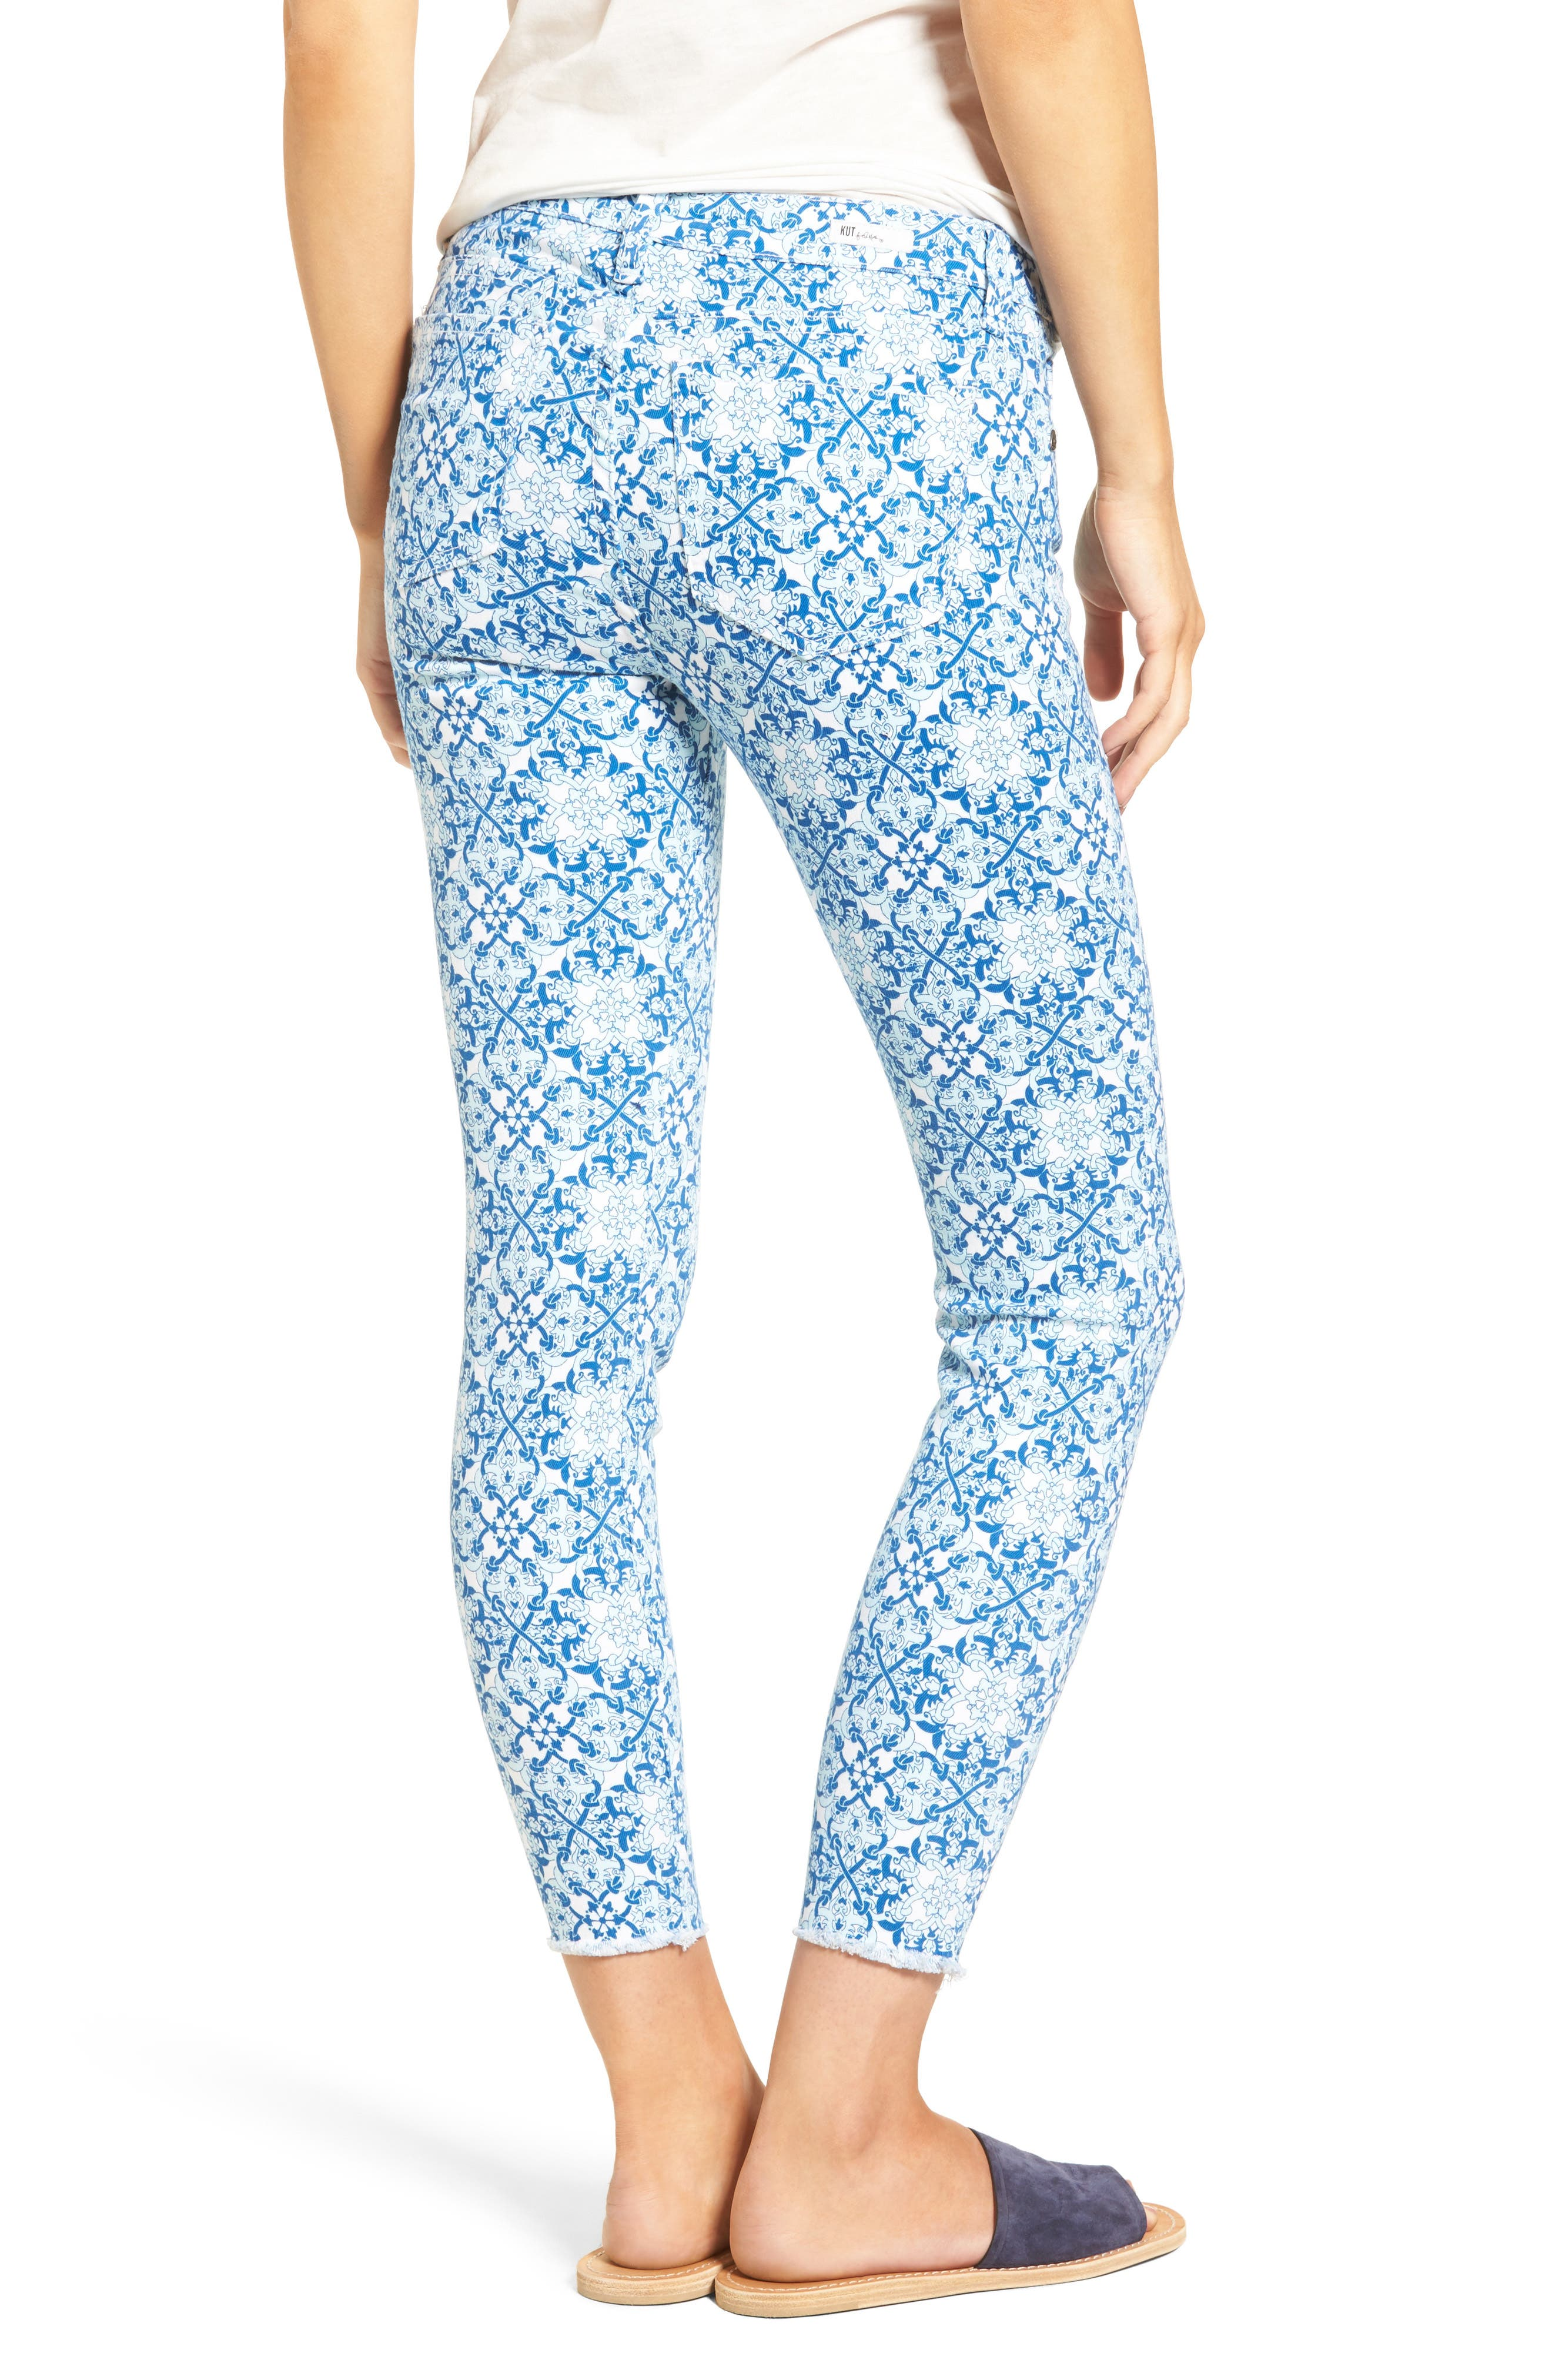 Alternate Image 2  - KUT from the Kloth Connie Print Fray Hem Ankle Skinny Jeans (White/Blue)